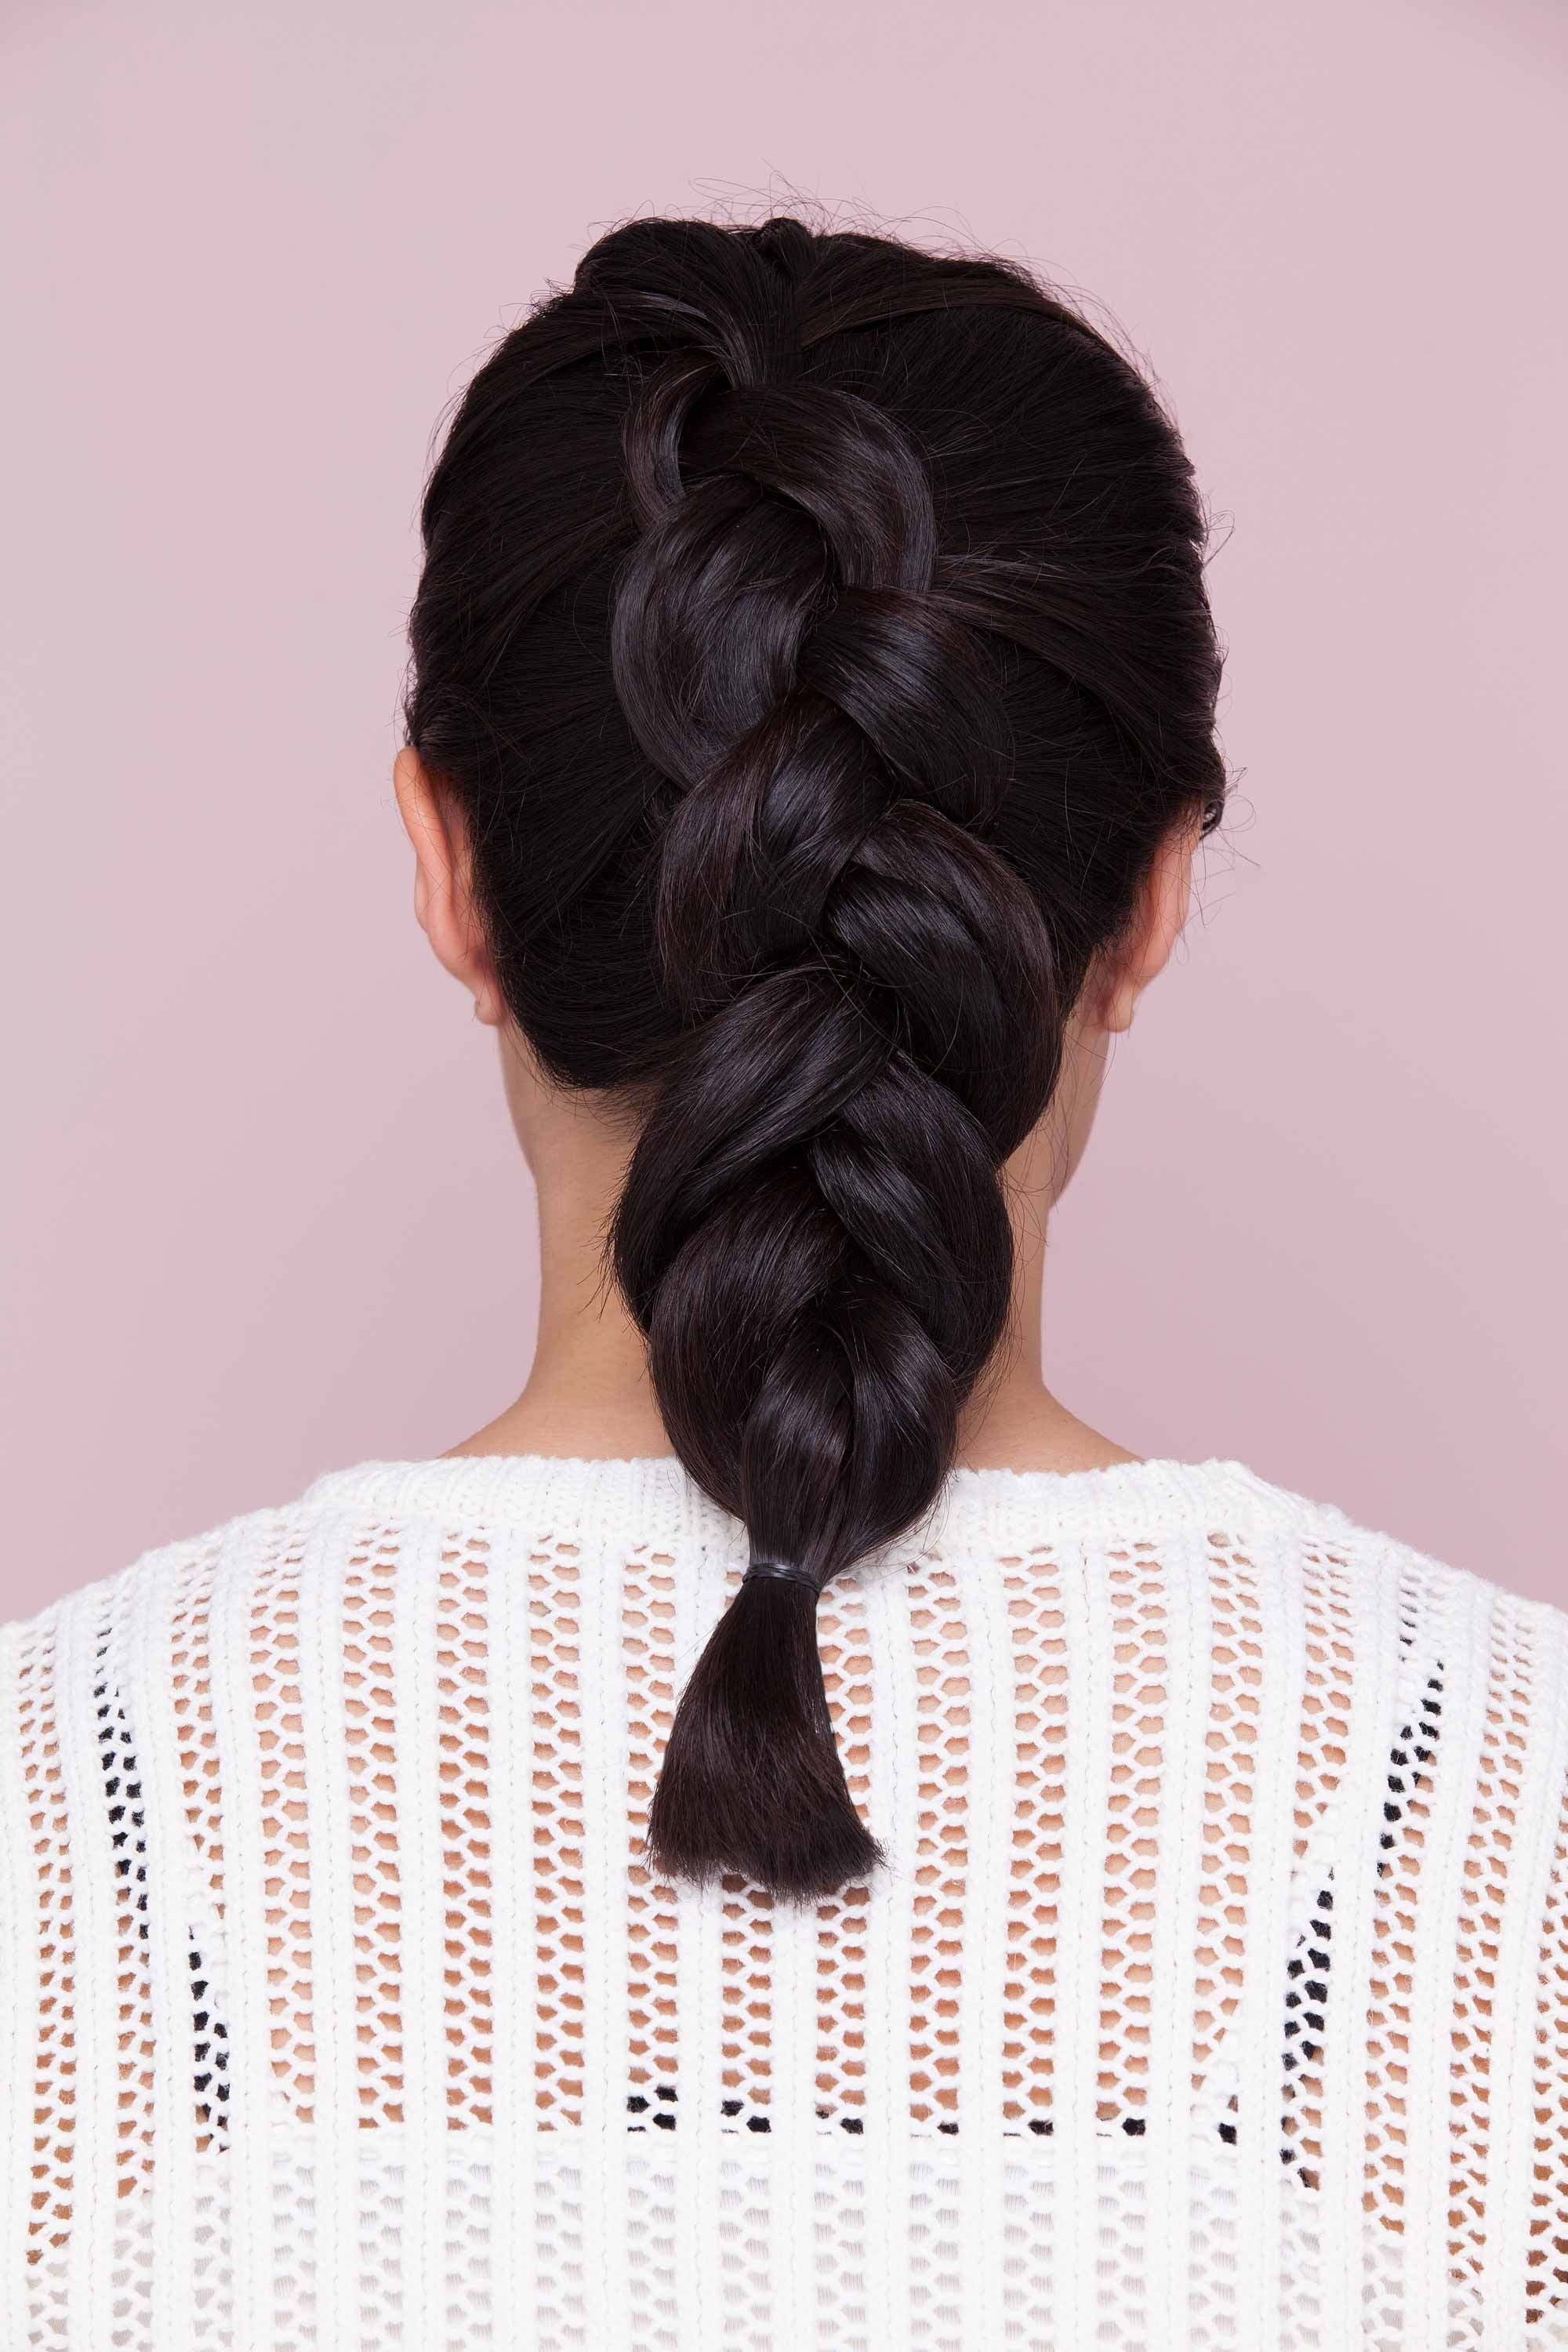 French Braid Hairstyles: 8 Casual Weekend Plaits To Try Within Newest French Braid Hairstyles With Ponytail (View 6 of 20)